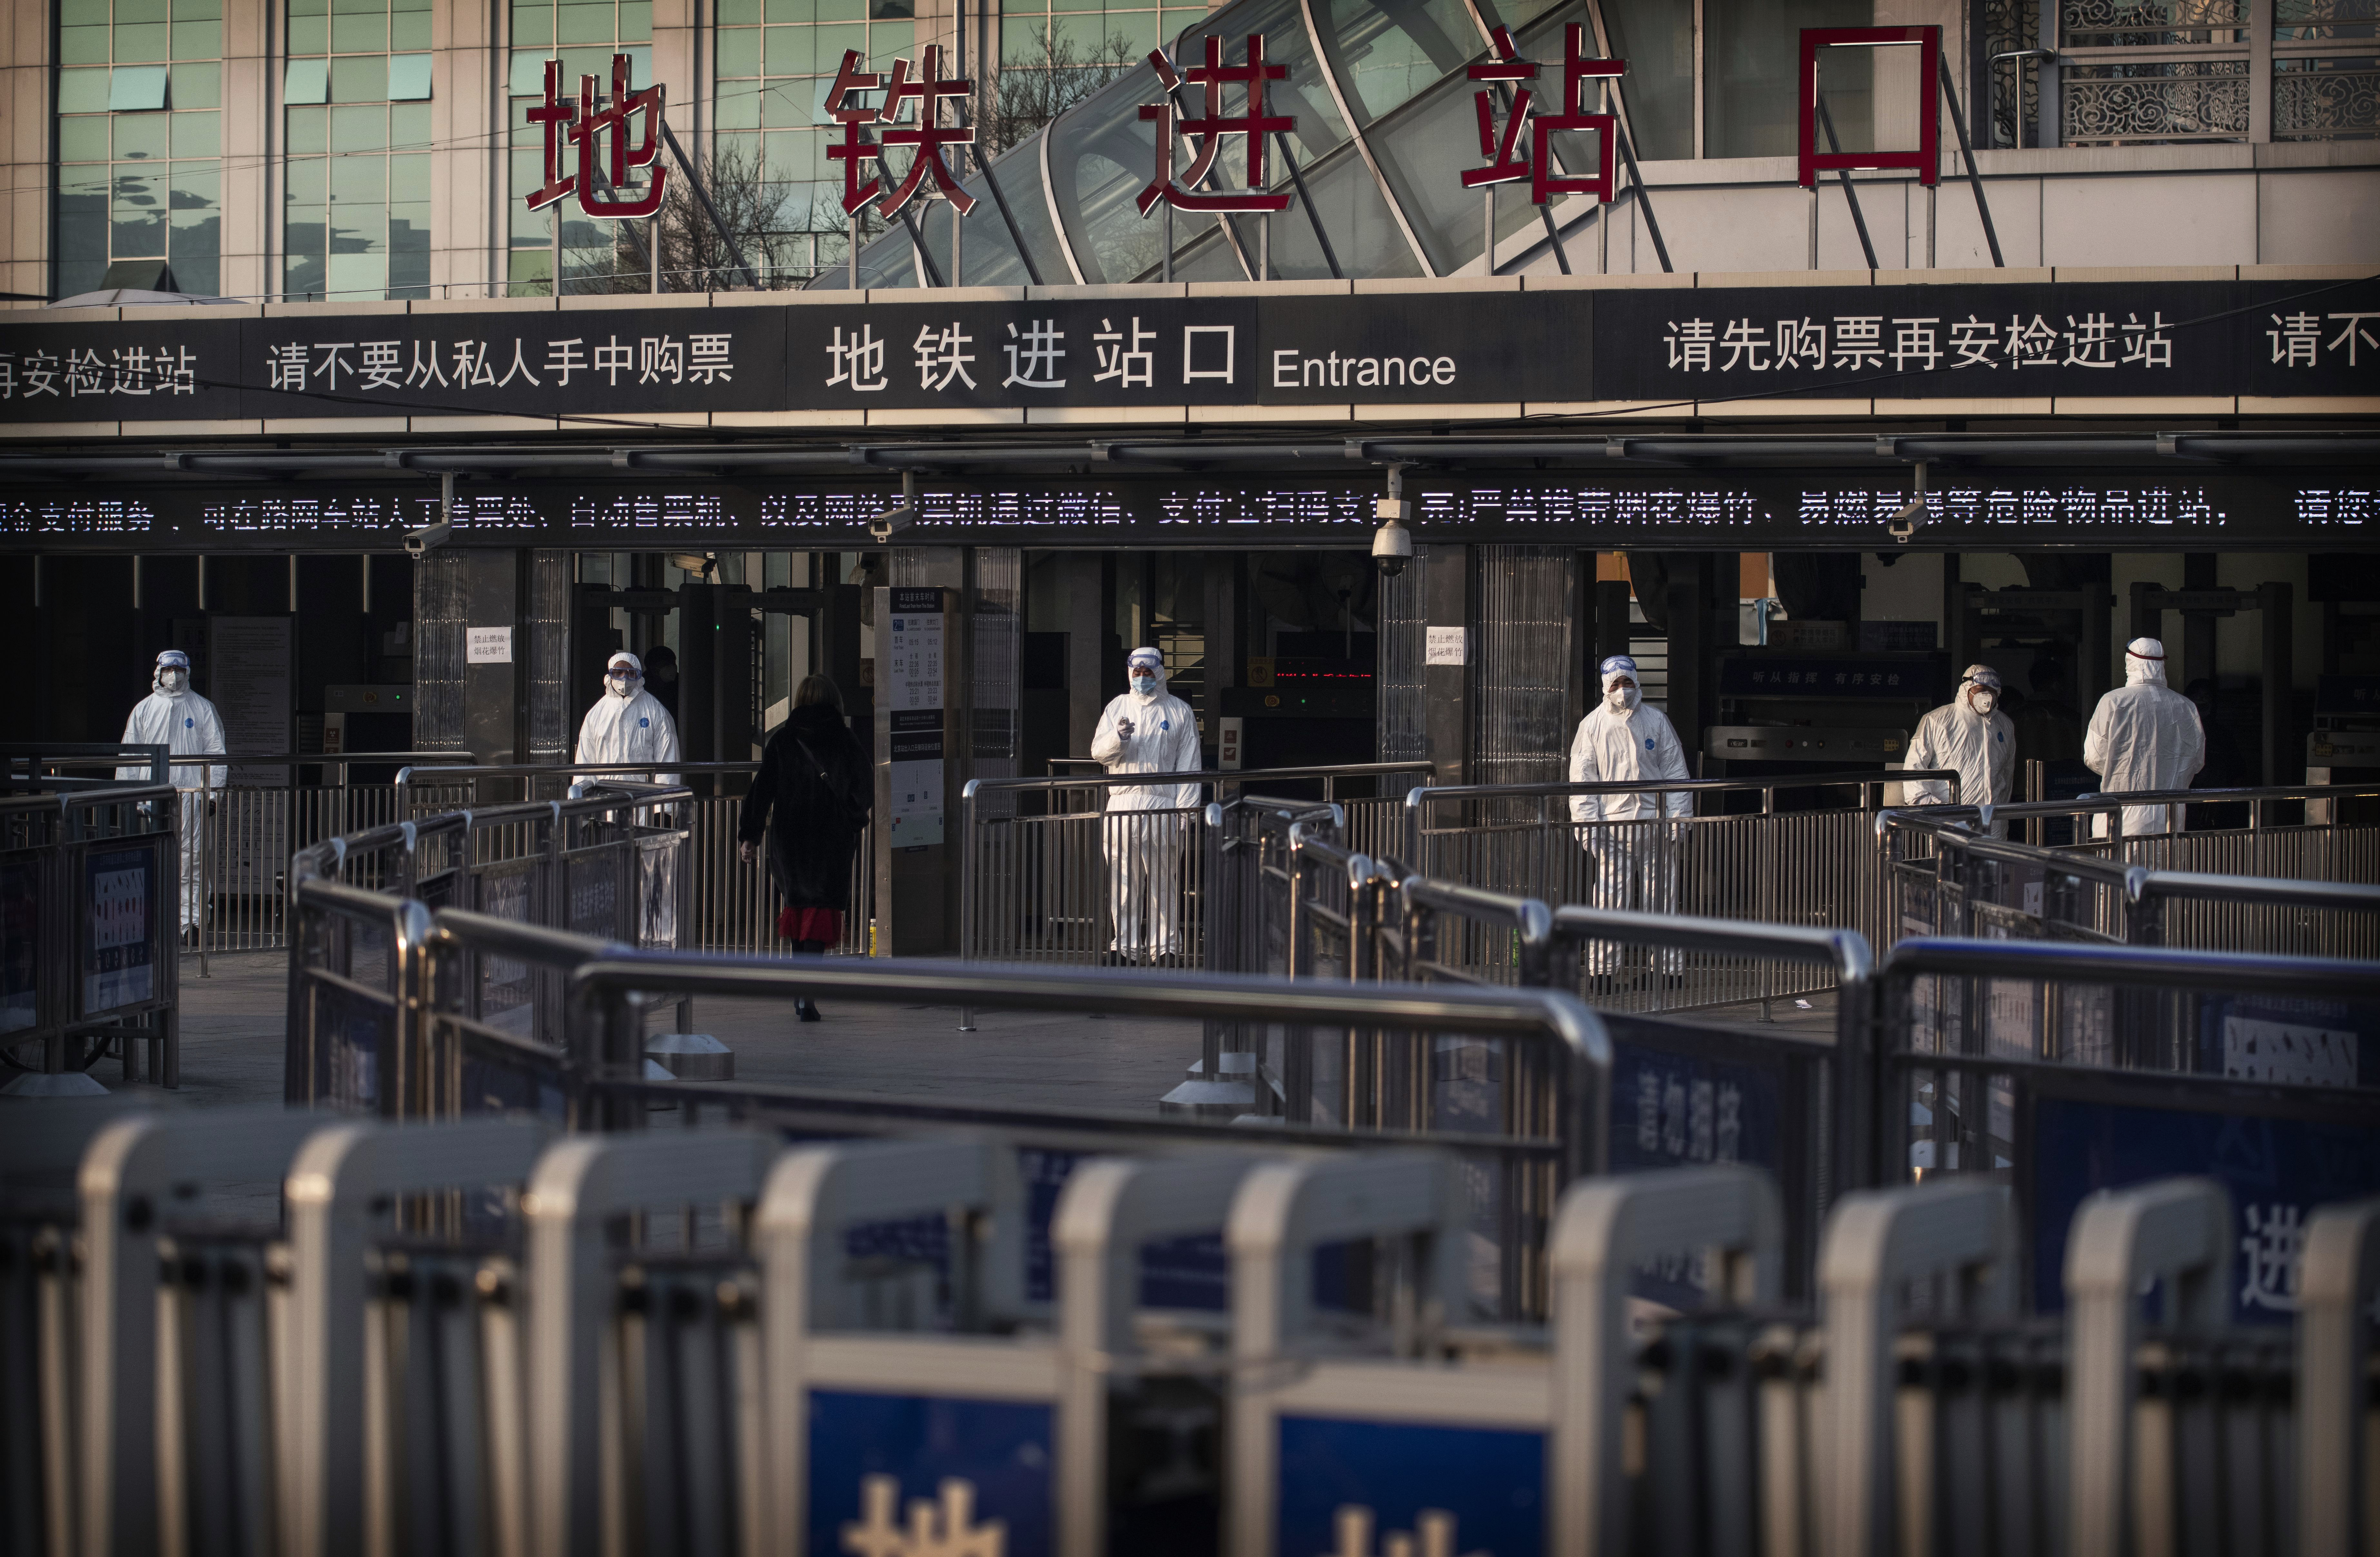 Chinese health workers standby to check the temperature of travelers entering a subway station in Beijing, China, on January 25.